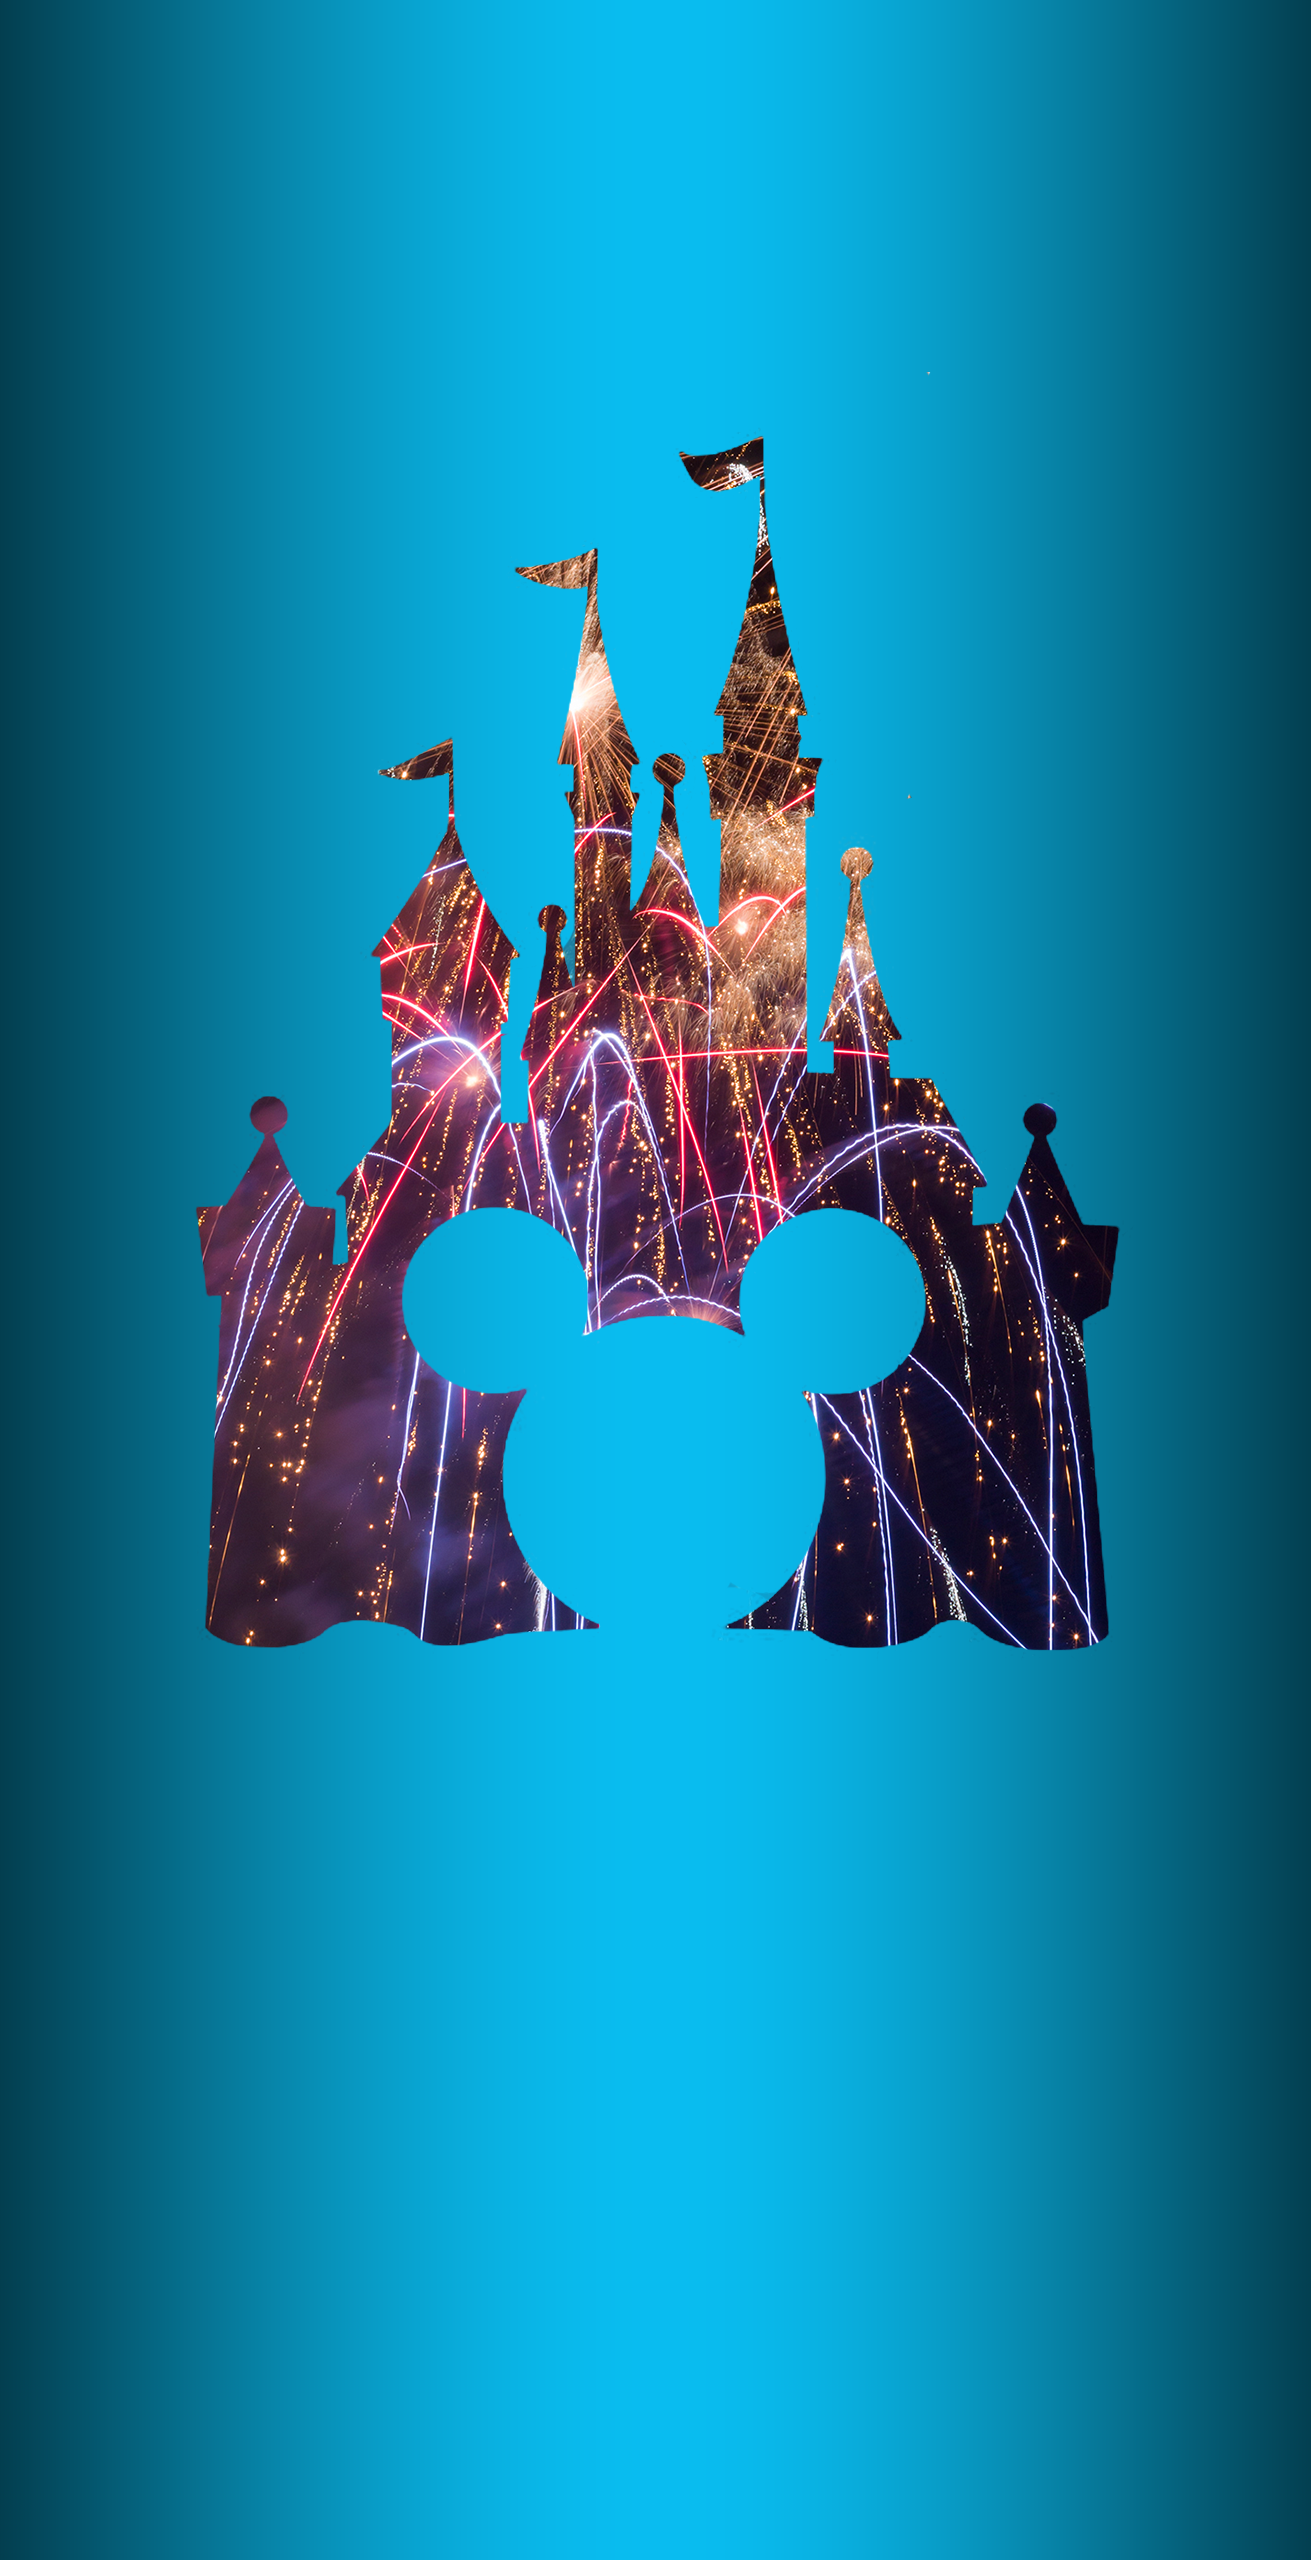 A Disney Wallpaper I Made A While Back Disneyphonebackgrounds A Disney Wallpaper I Made A Wh Disney Phone Wallpaper Disney Wallpaper Disney Phone Backgrounds